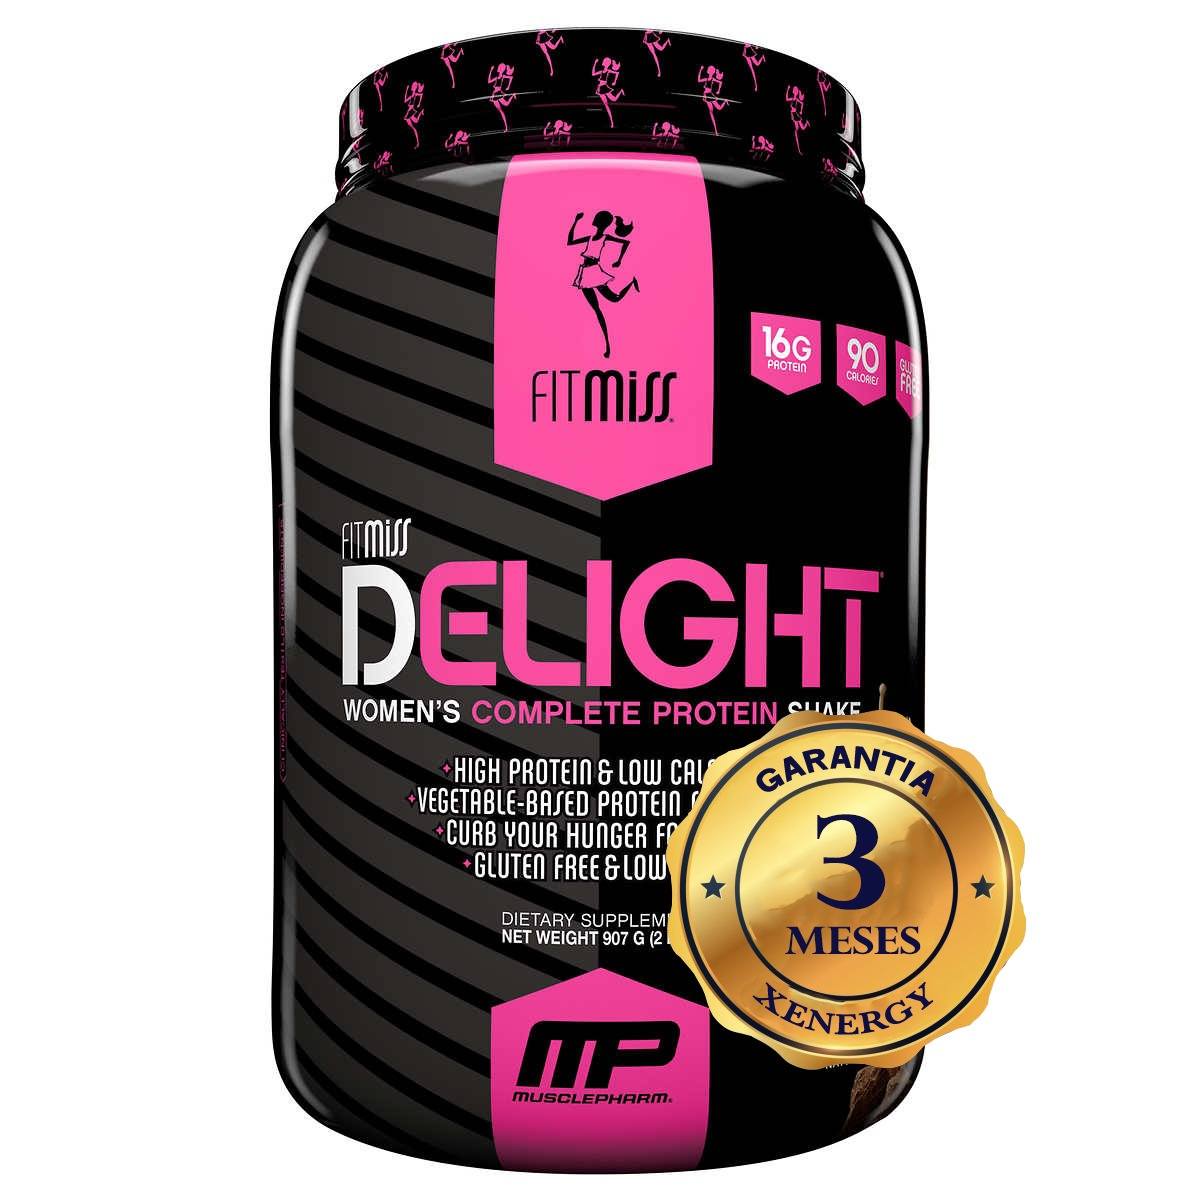 Fitmiss Delight 2 Libras Proteina Suplemento Mujer Fitness